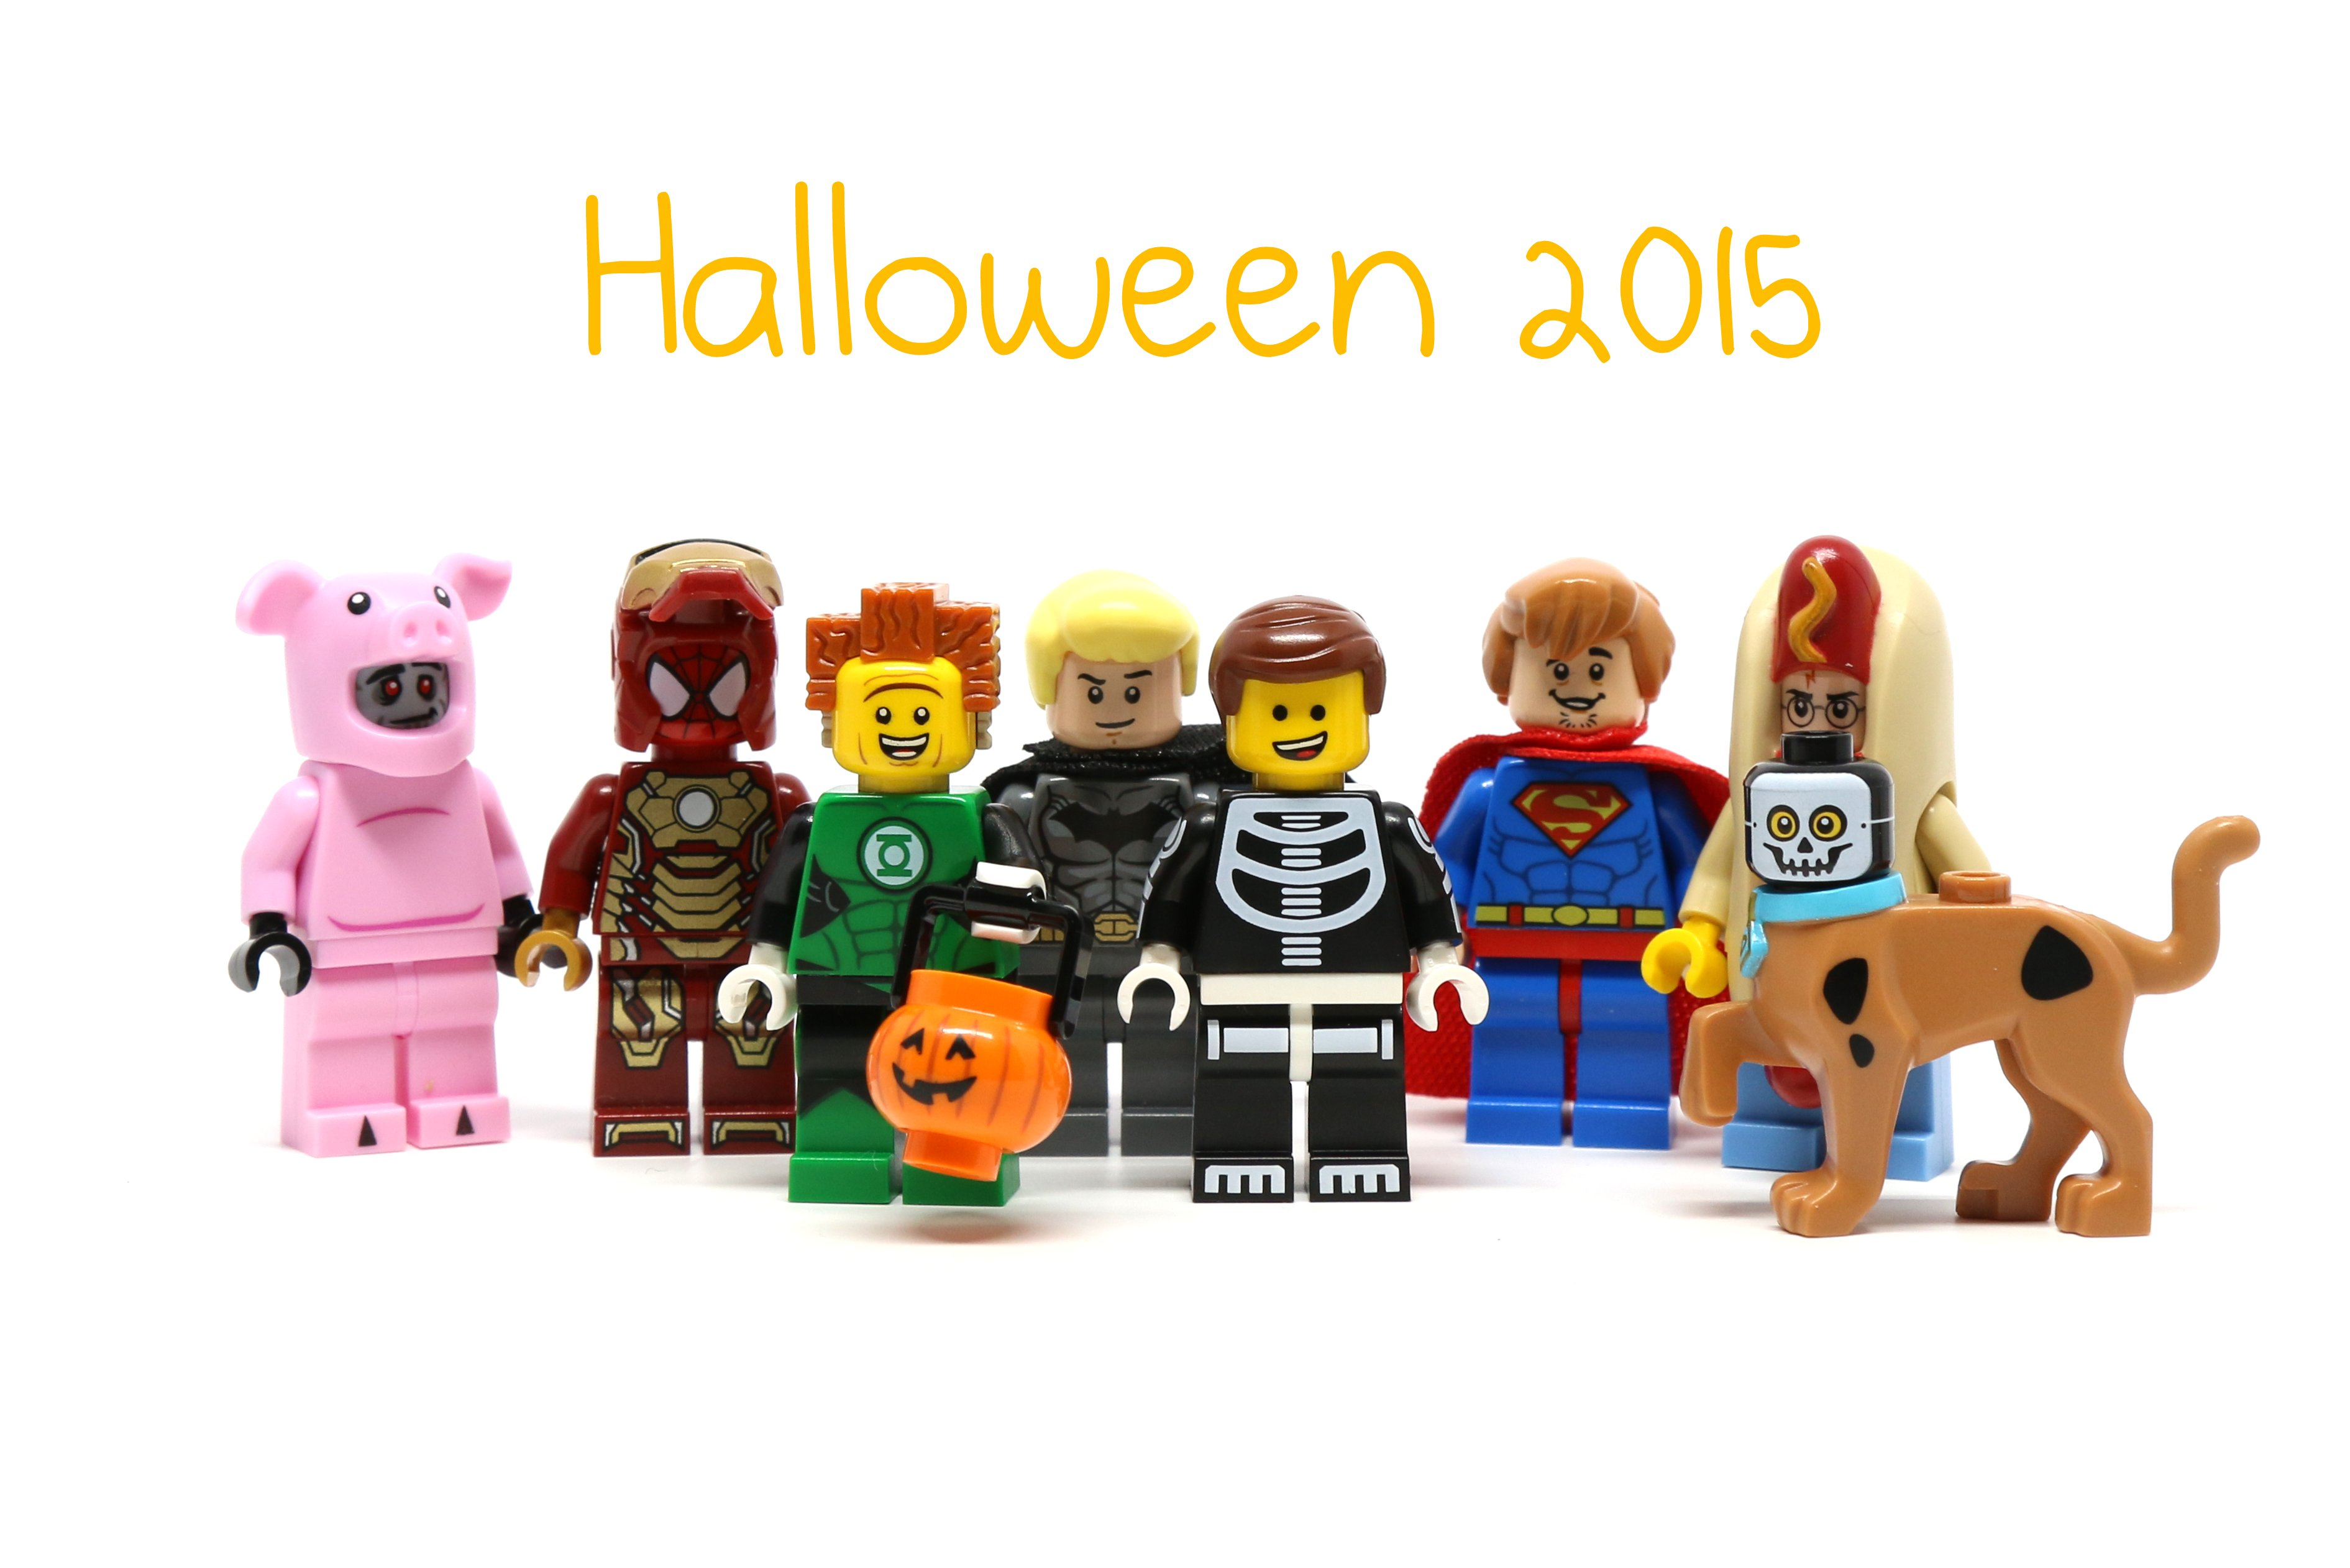 Halloween 2015 Giveaway Win A Lego Trick Or Treat Set